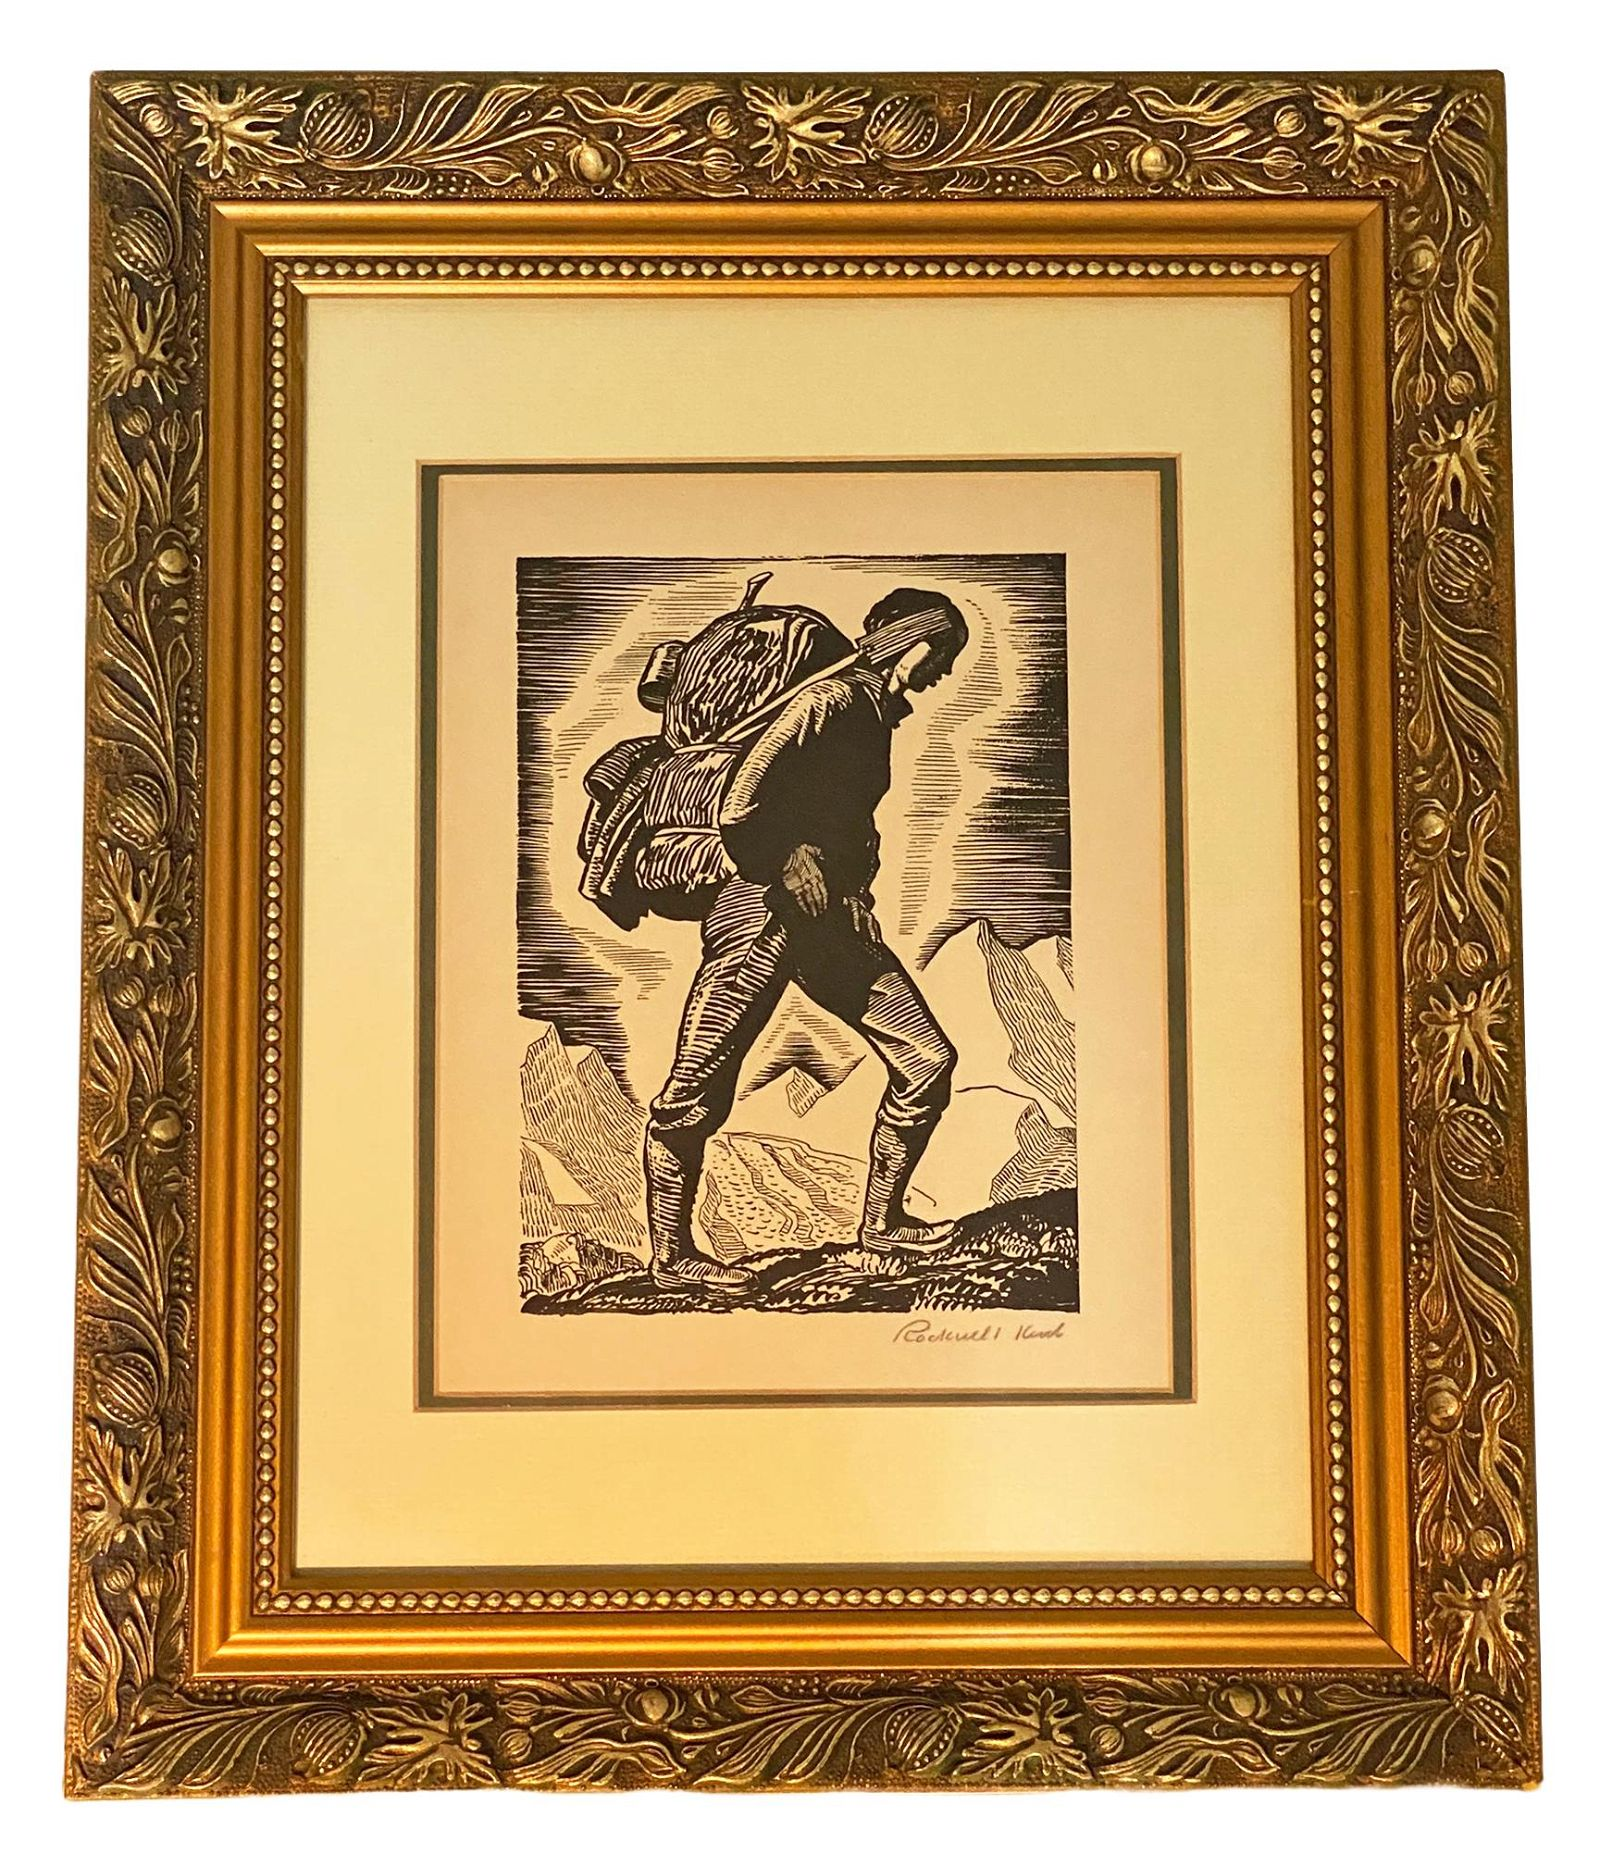 Rare Rockwell Kent Pencil Signed Woodcut on Paper